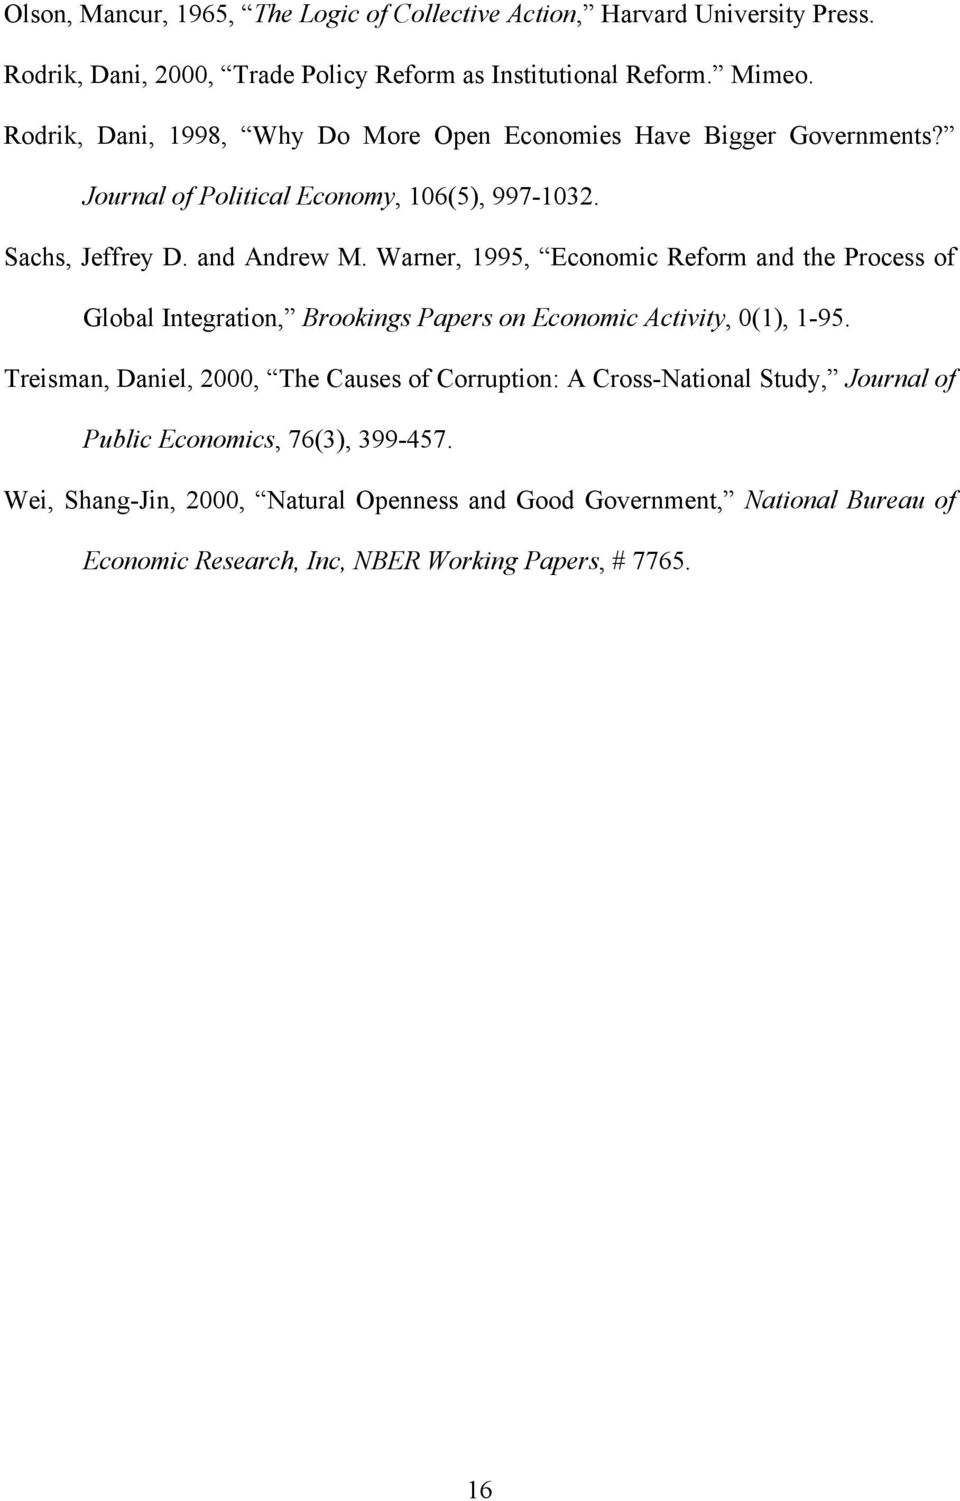 Free online research paper writer